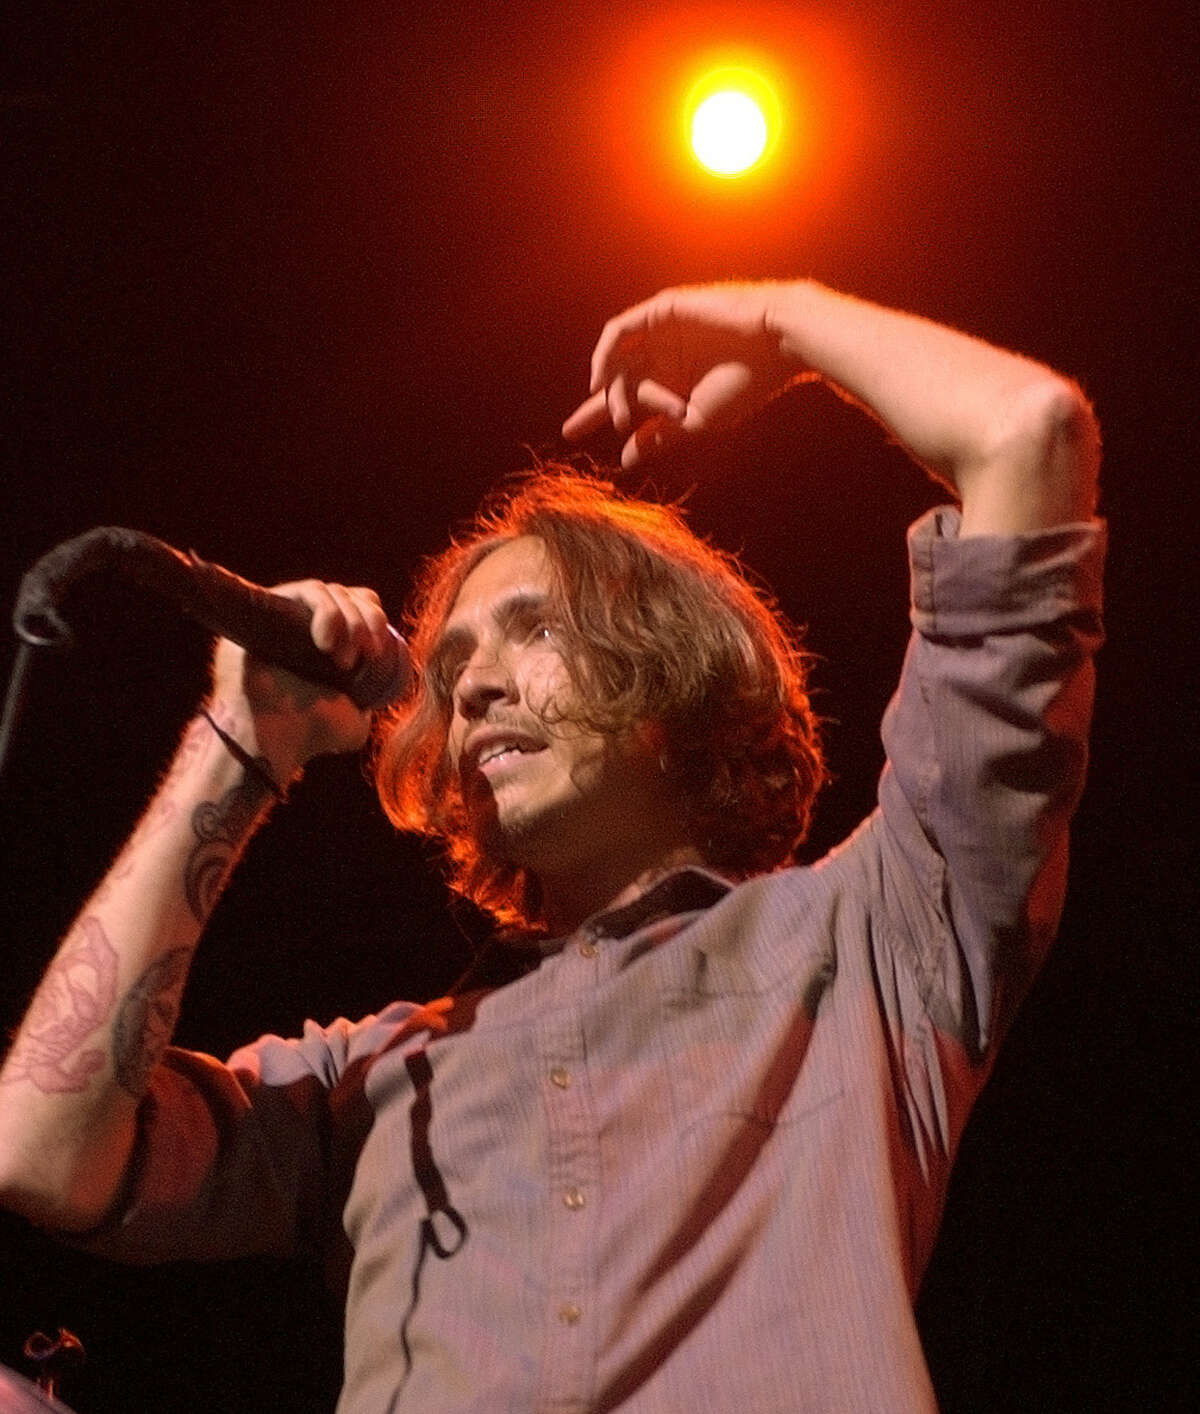 **FILE**Brandon Boyd of Incubus performs at Lollapalooza in Noblesville, Ind., on July 5, 2003. Boyd, 28, pleaded guilty Tuesday, Nov. 23, 2004, to disorderly conduct and was fined $250 for carrying a switchblade in his bag while trying to board a plane in the Queens borough of New York.(AP Photo/Seth Rossman)